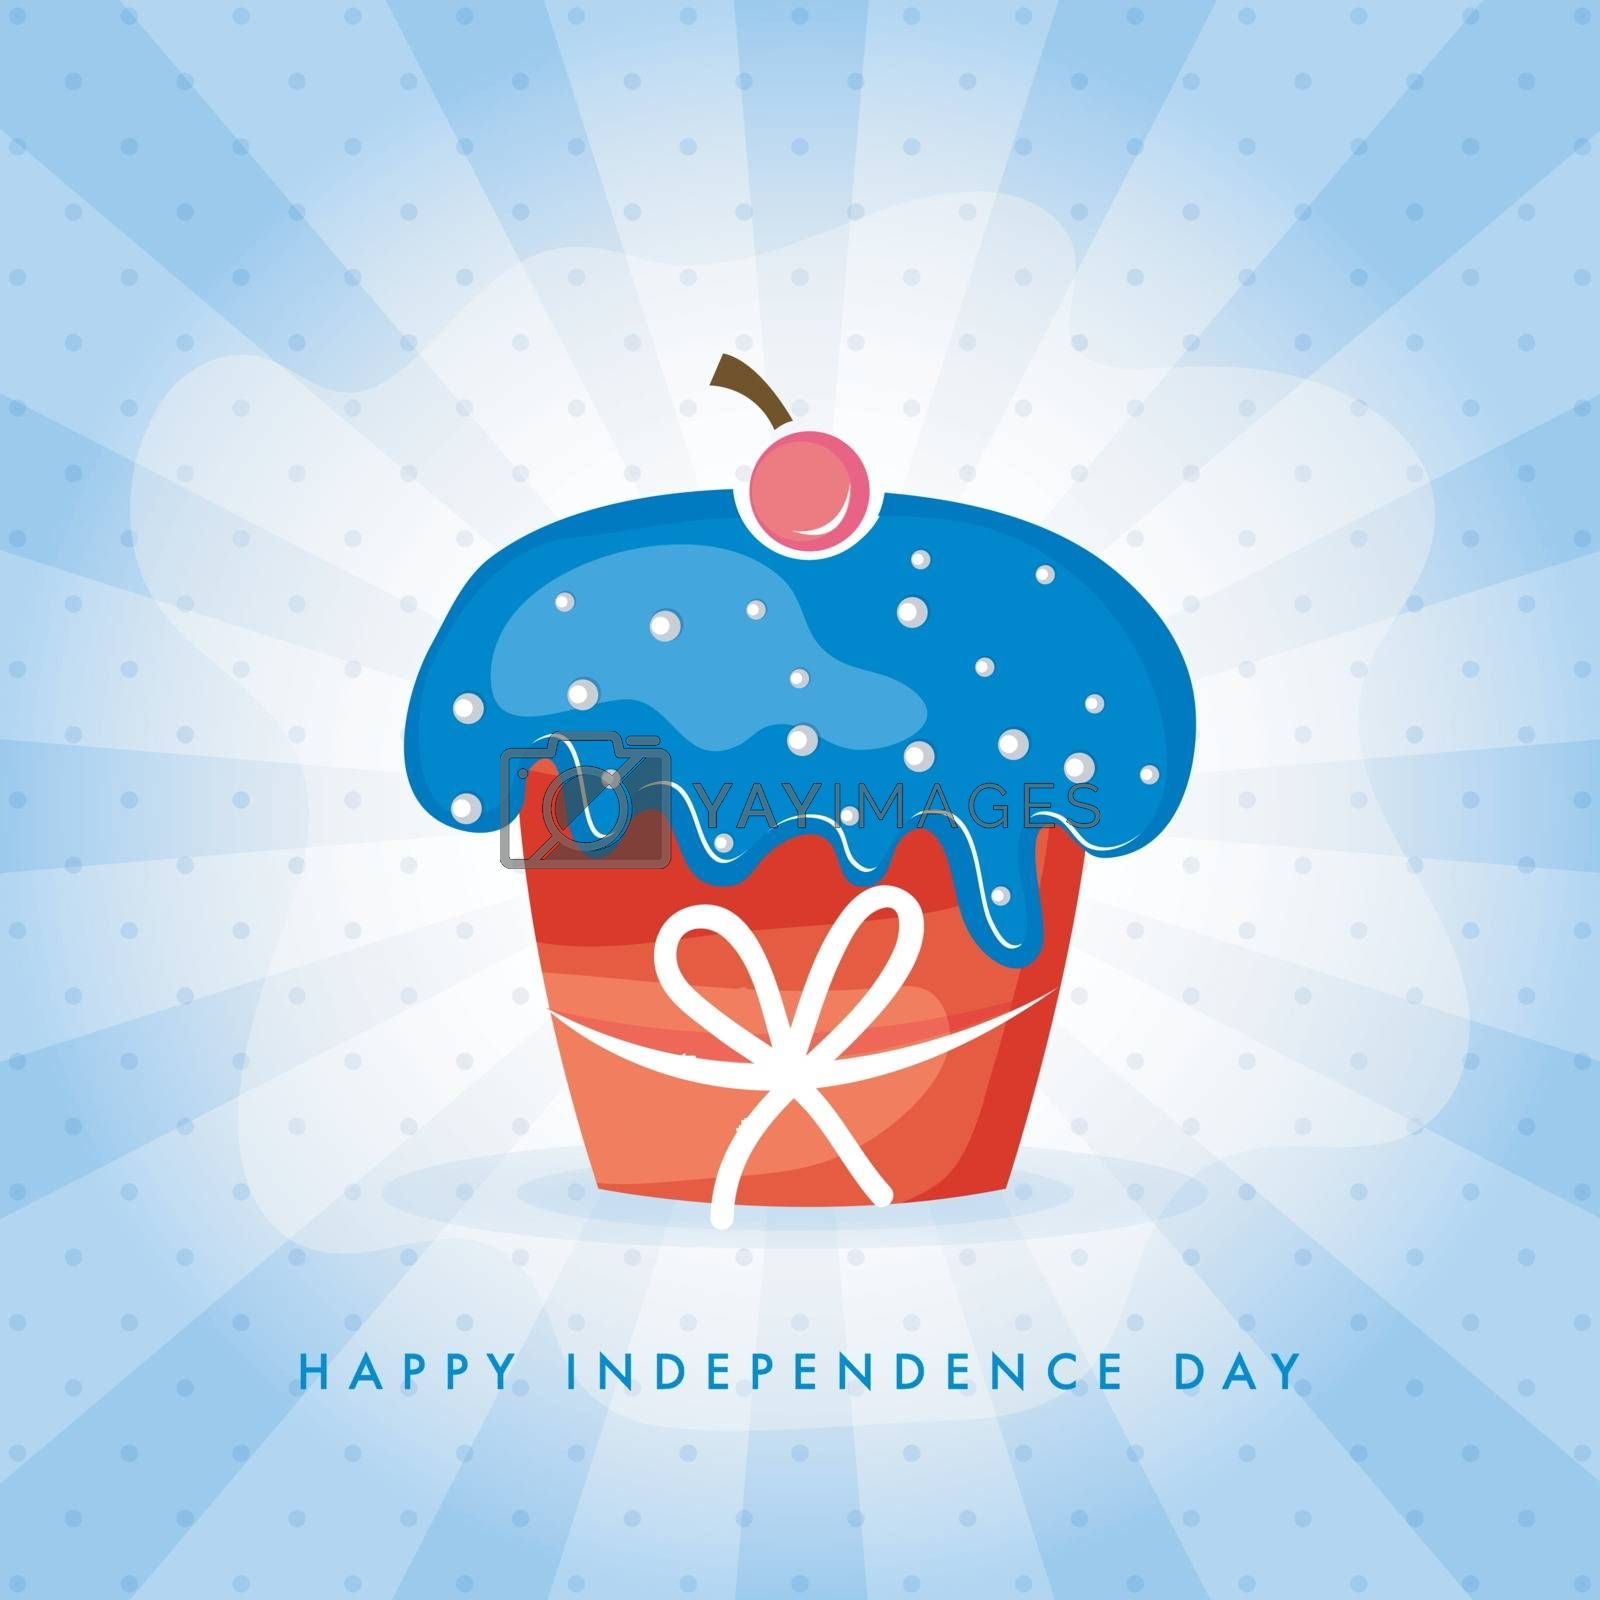 Sweet Cupcake in USA Flag colors on abstract rays background for Happy Independence Day.